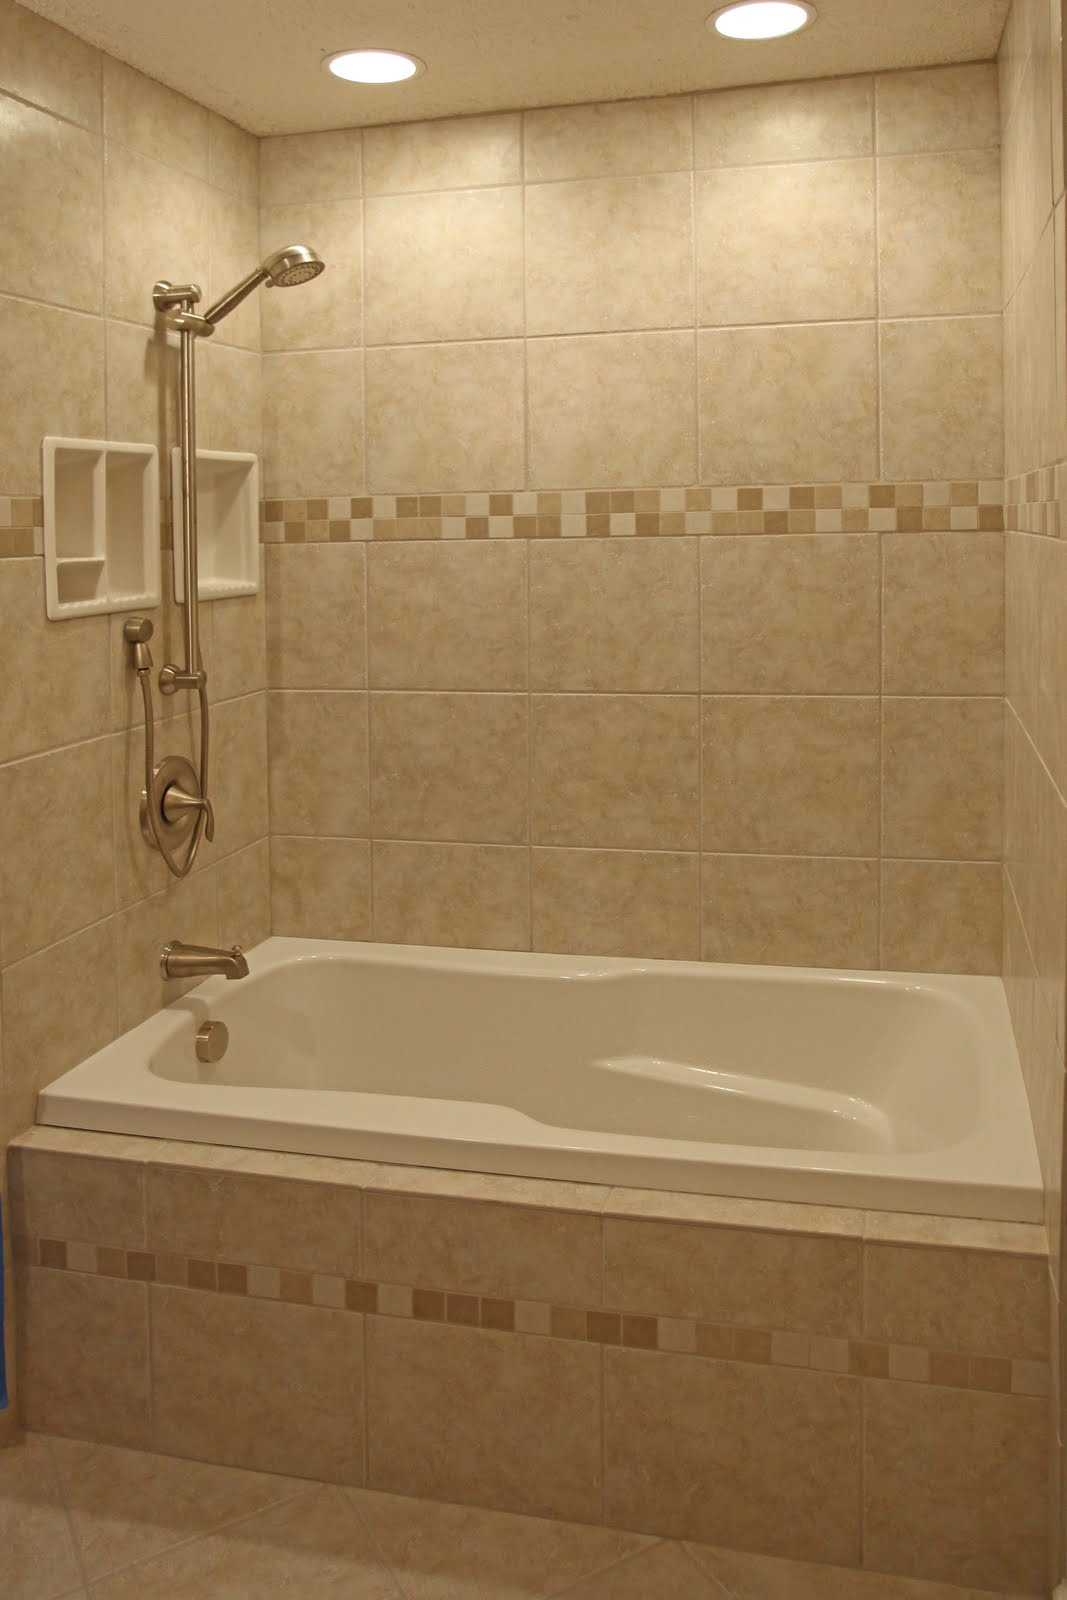 Bathroom remodeling design ideas tile shower niches for Bathroom shower ideas